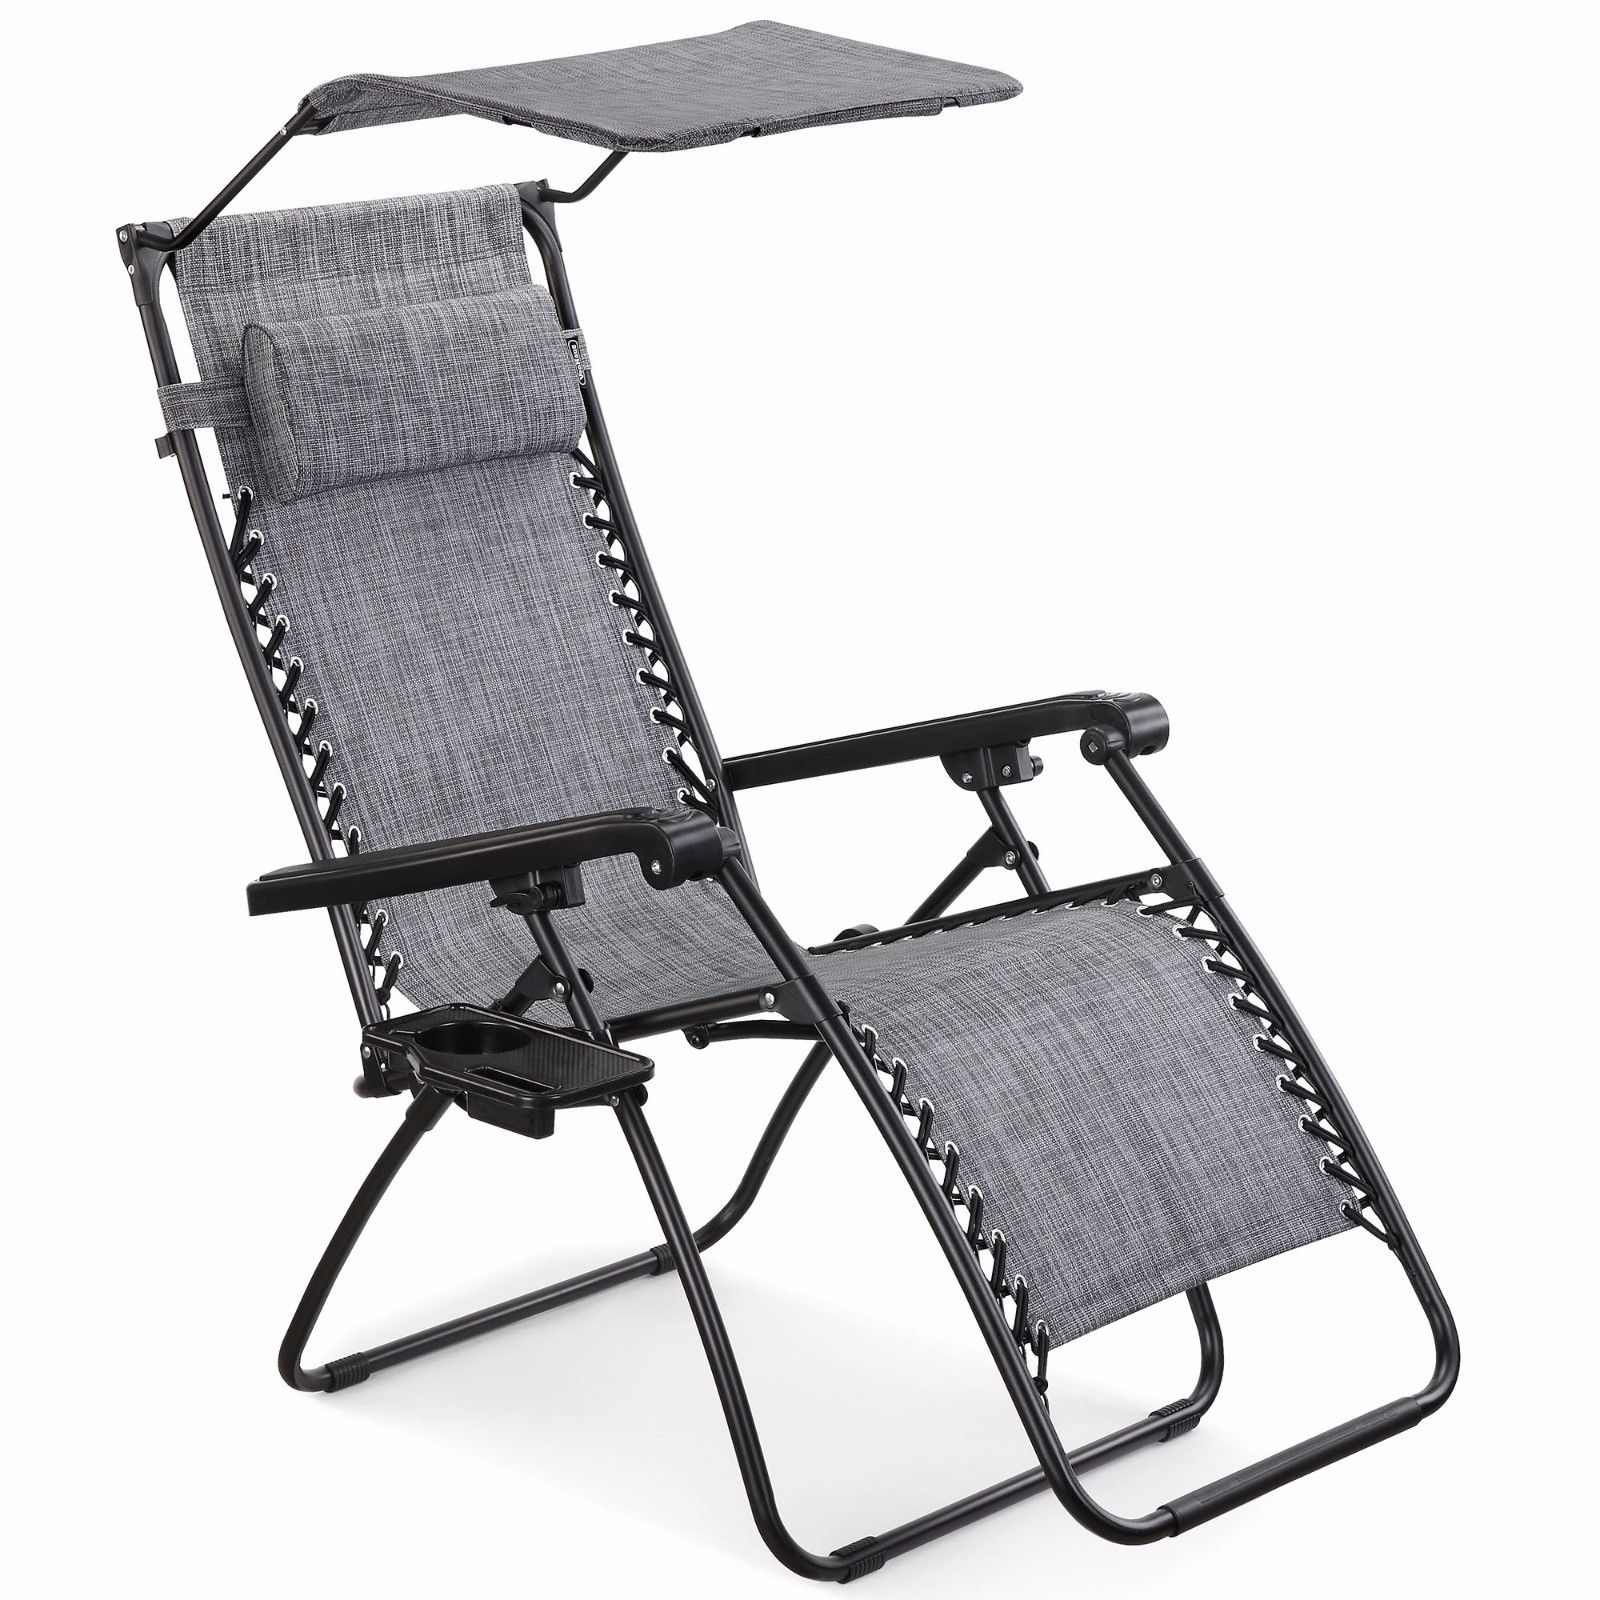 chair with shade canopy playroom table and chairs vonhaus textoline zero gravity sun lounger